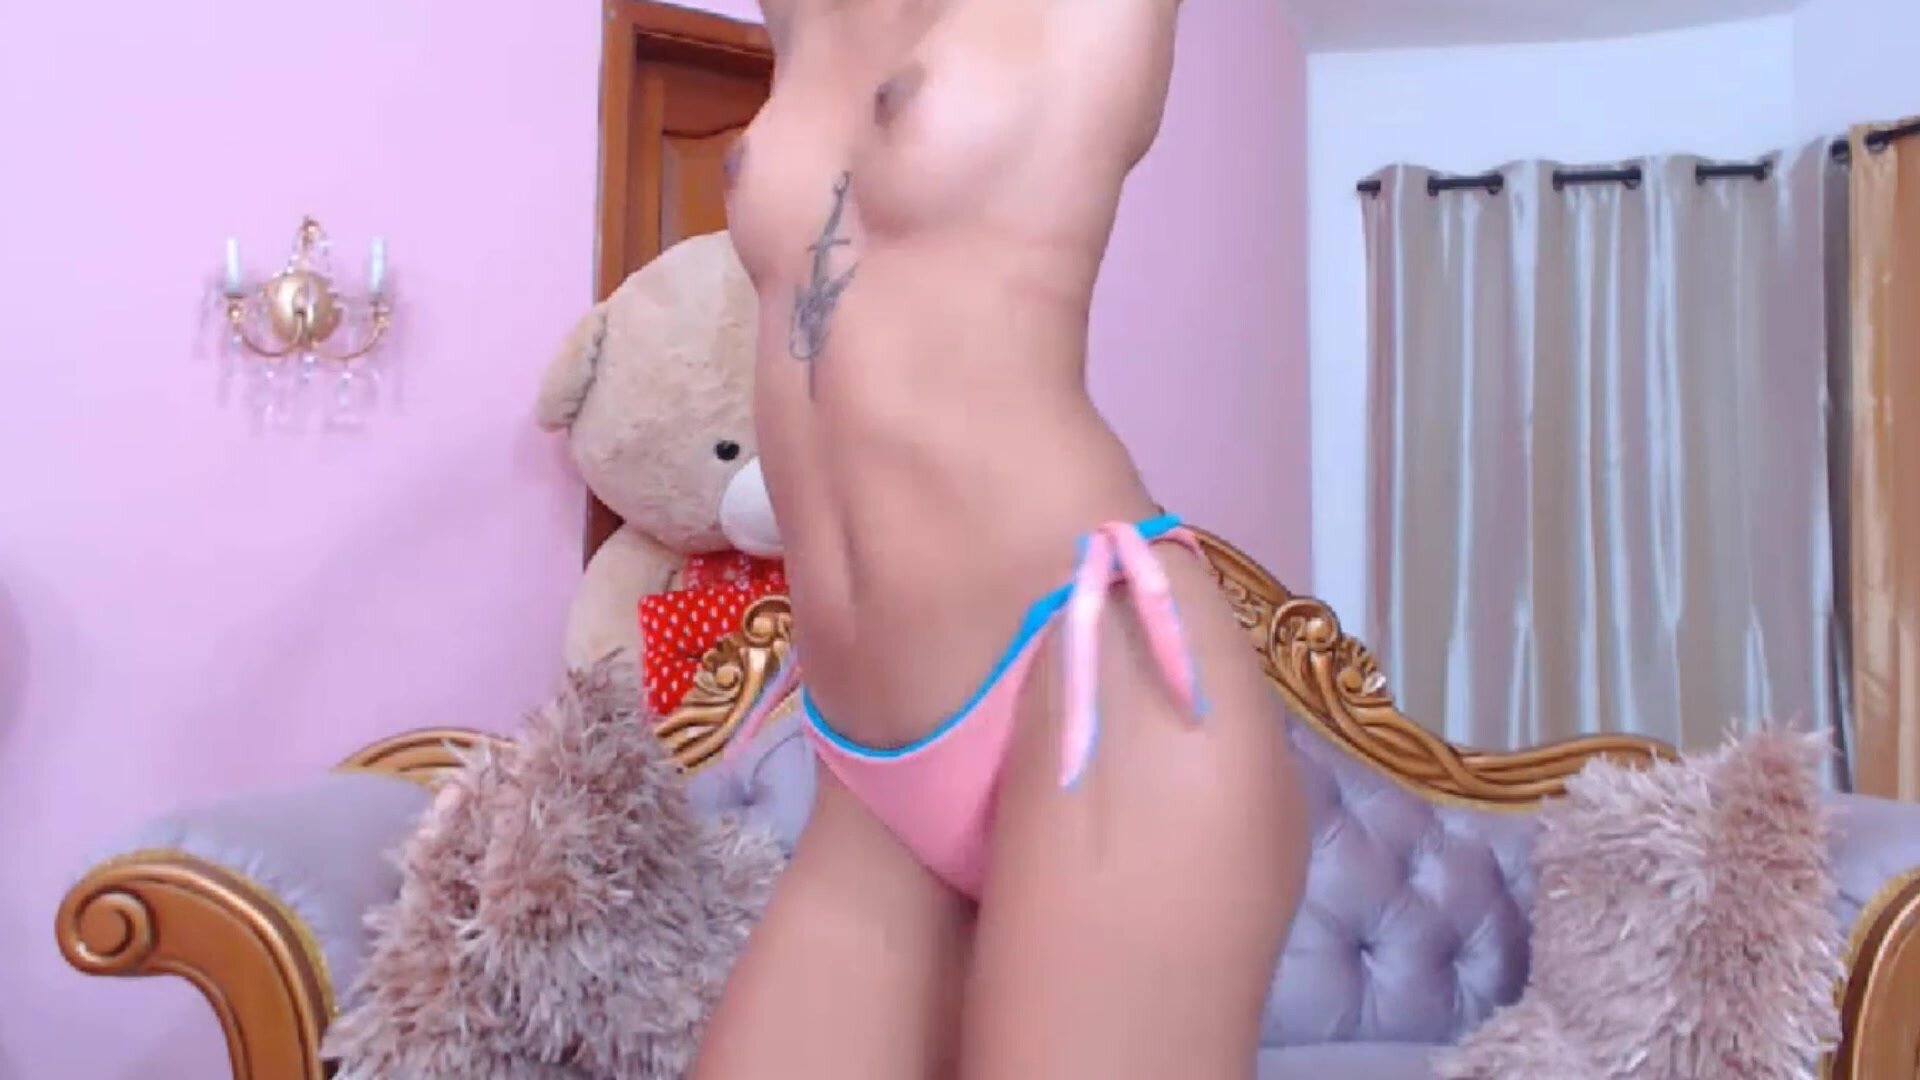 Petite girl Kimlohannx with a hairy pussy and a small ass on livesexify.net